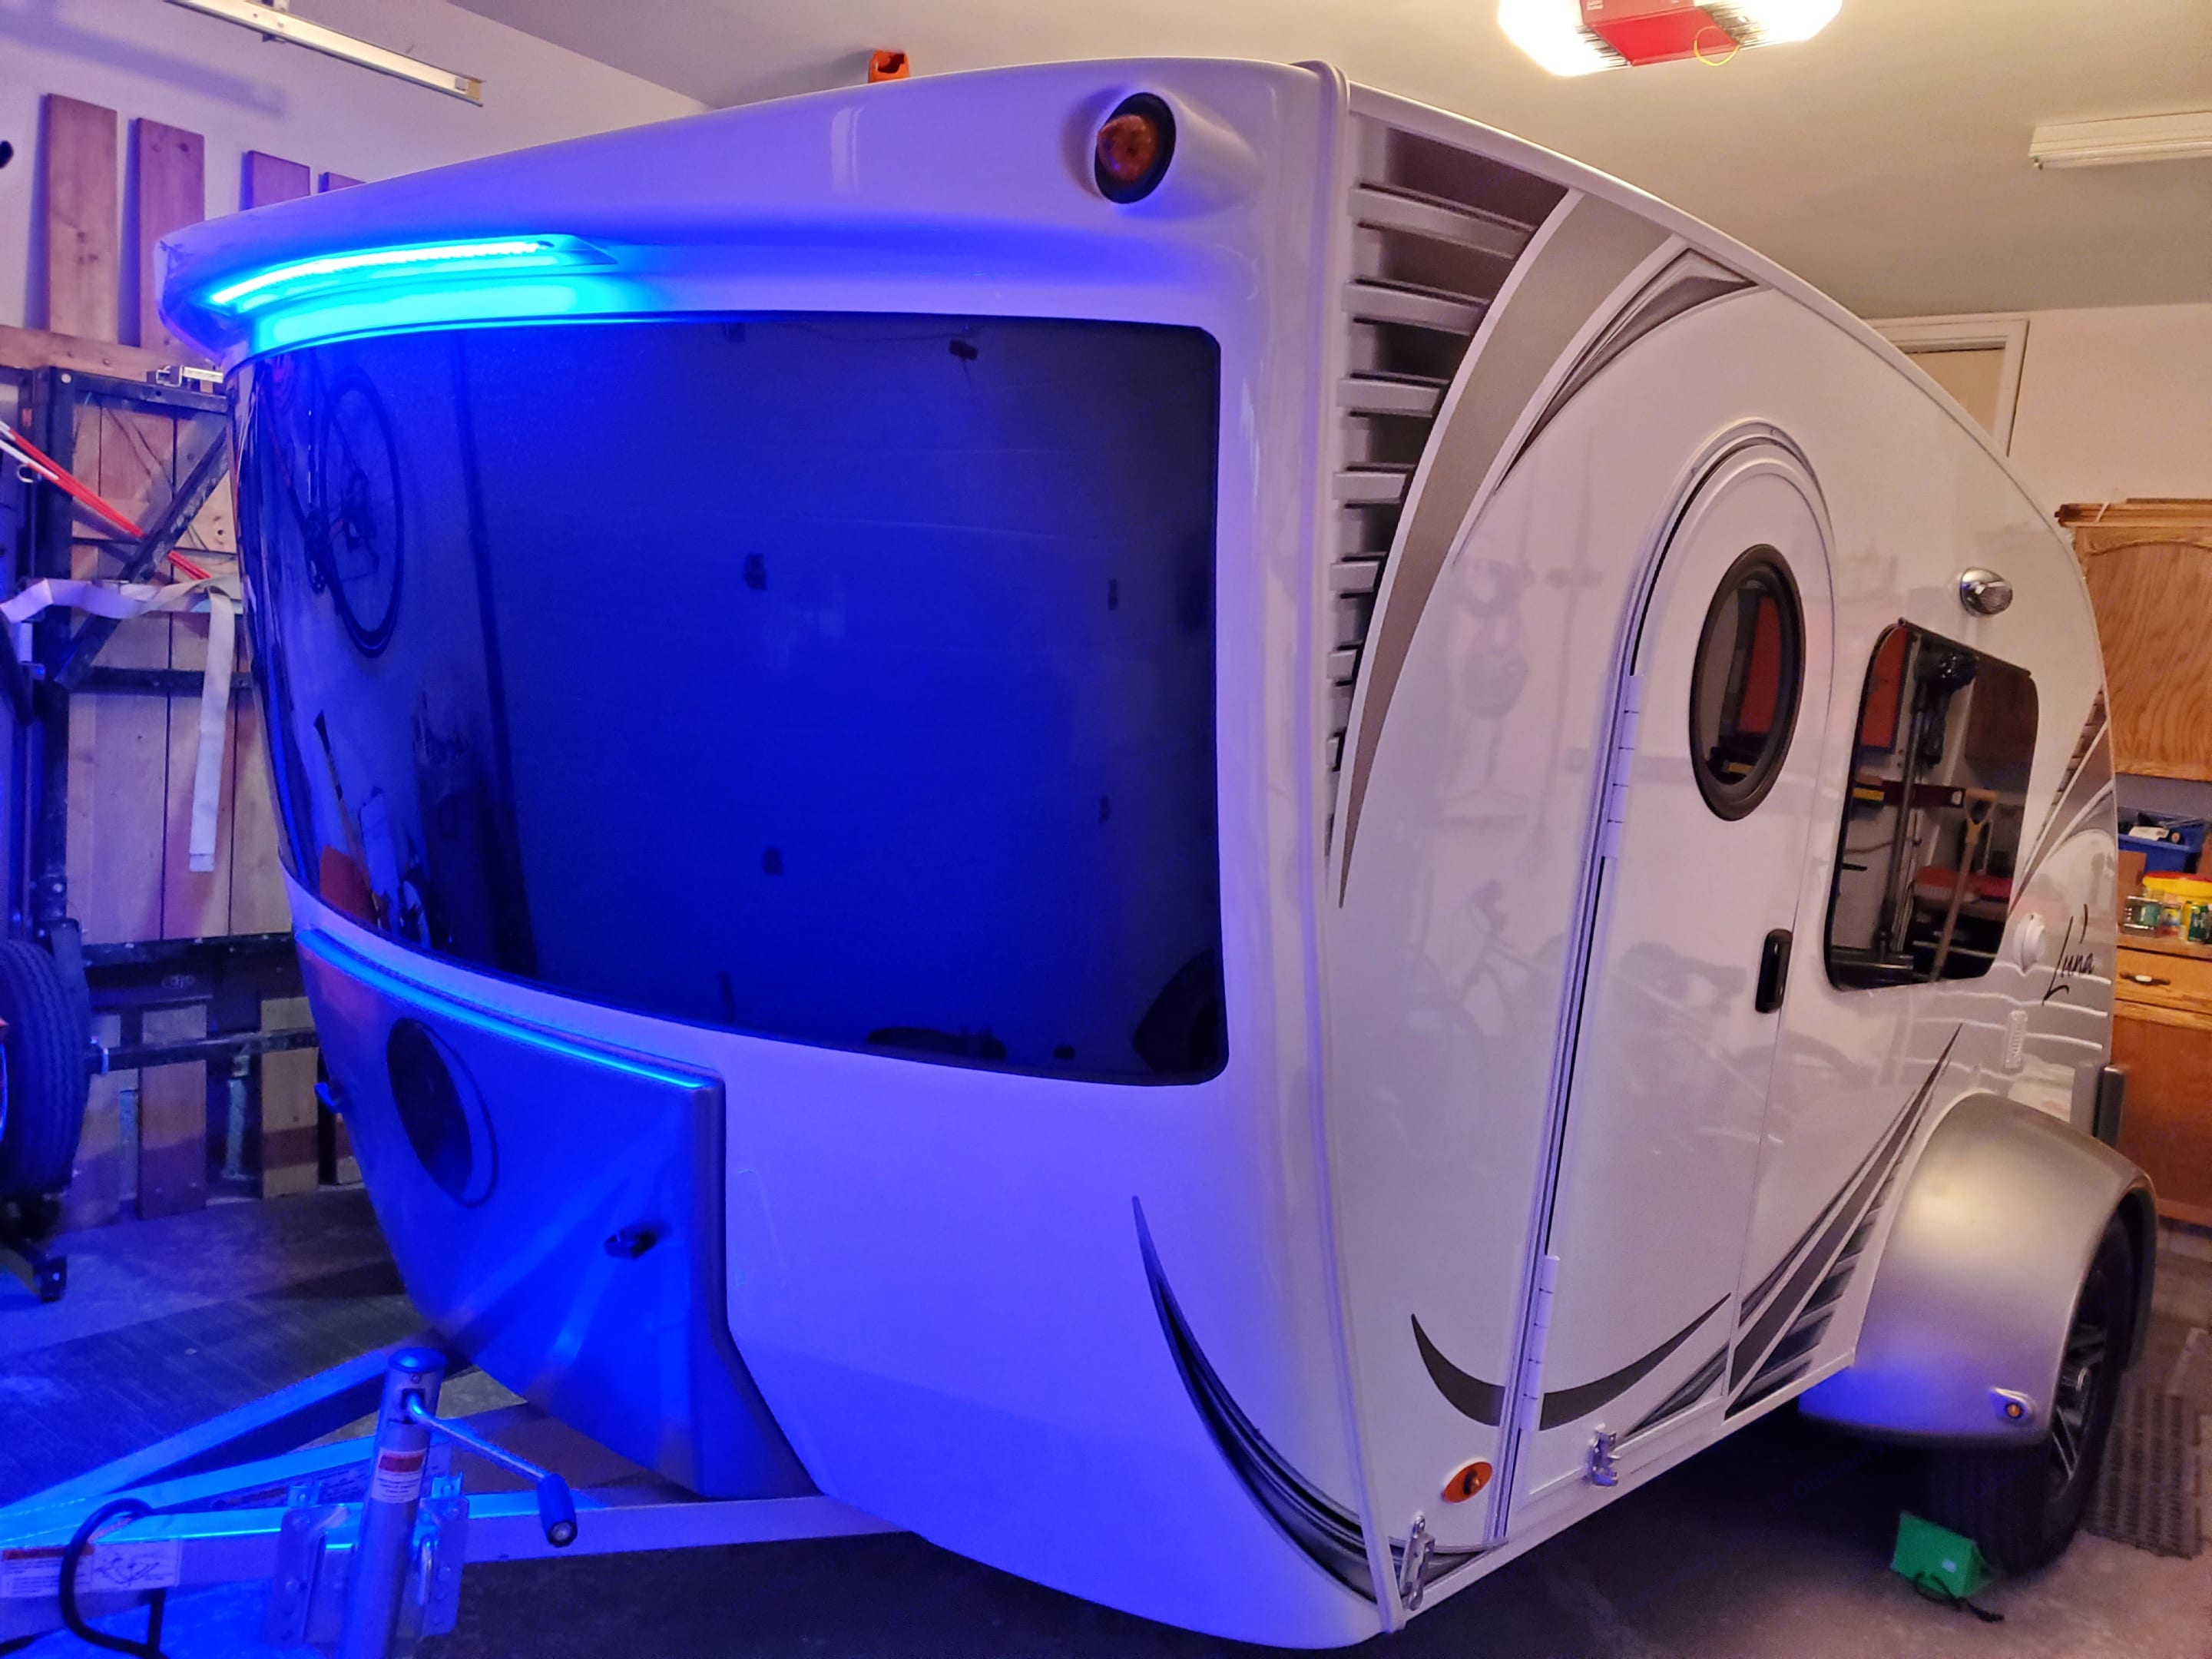 Outside view of 180 degree panorama screen and LED lights to have the coolest trailer in a campground. You can manually point the trailer so you can enjoy the mountain view while having a coffee inside.. InTech RV Luna 2018